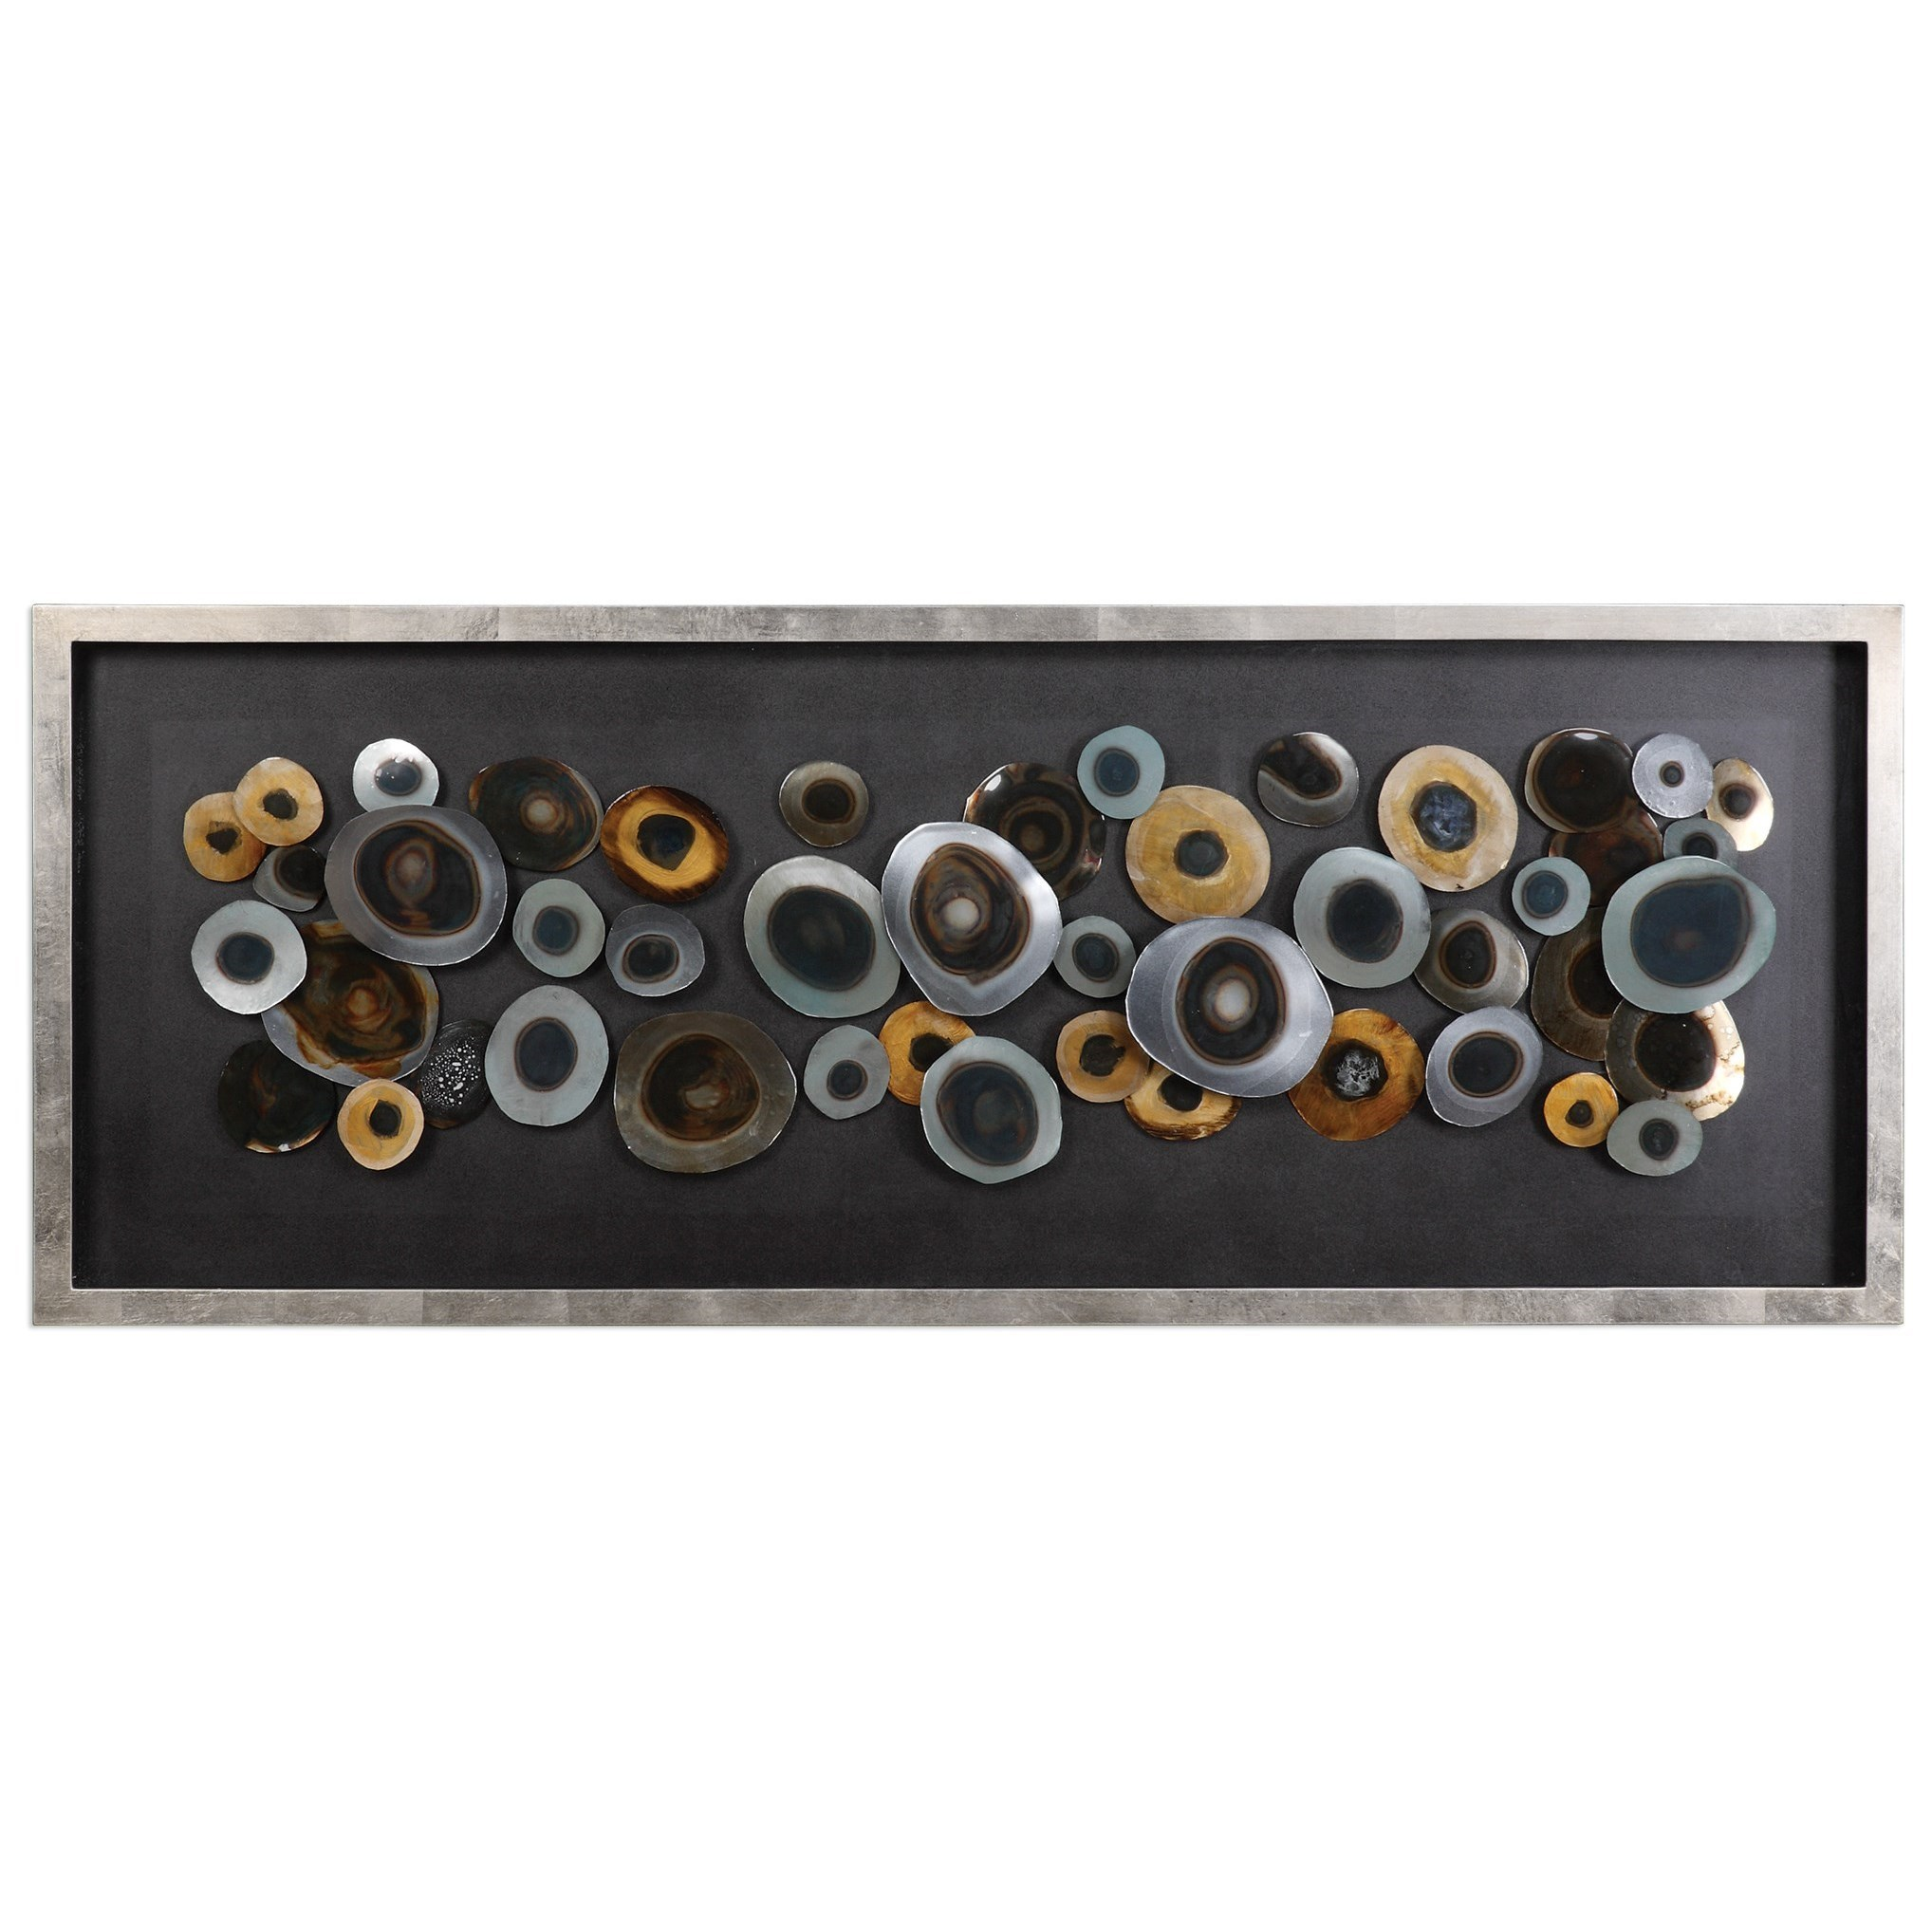 Uttermost Alternative Wall Decor Discs Shadow Box - Item Number: 04058